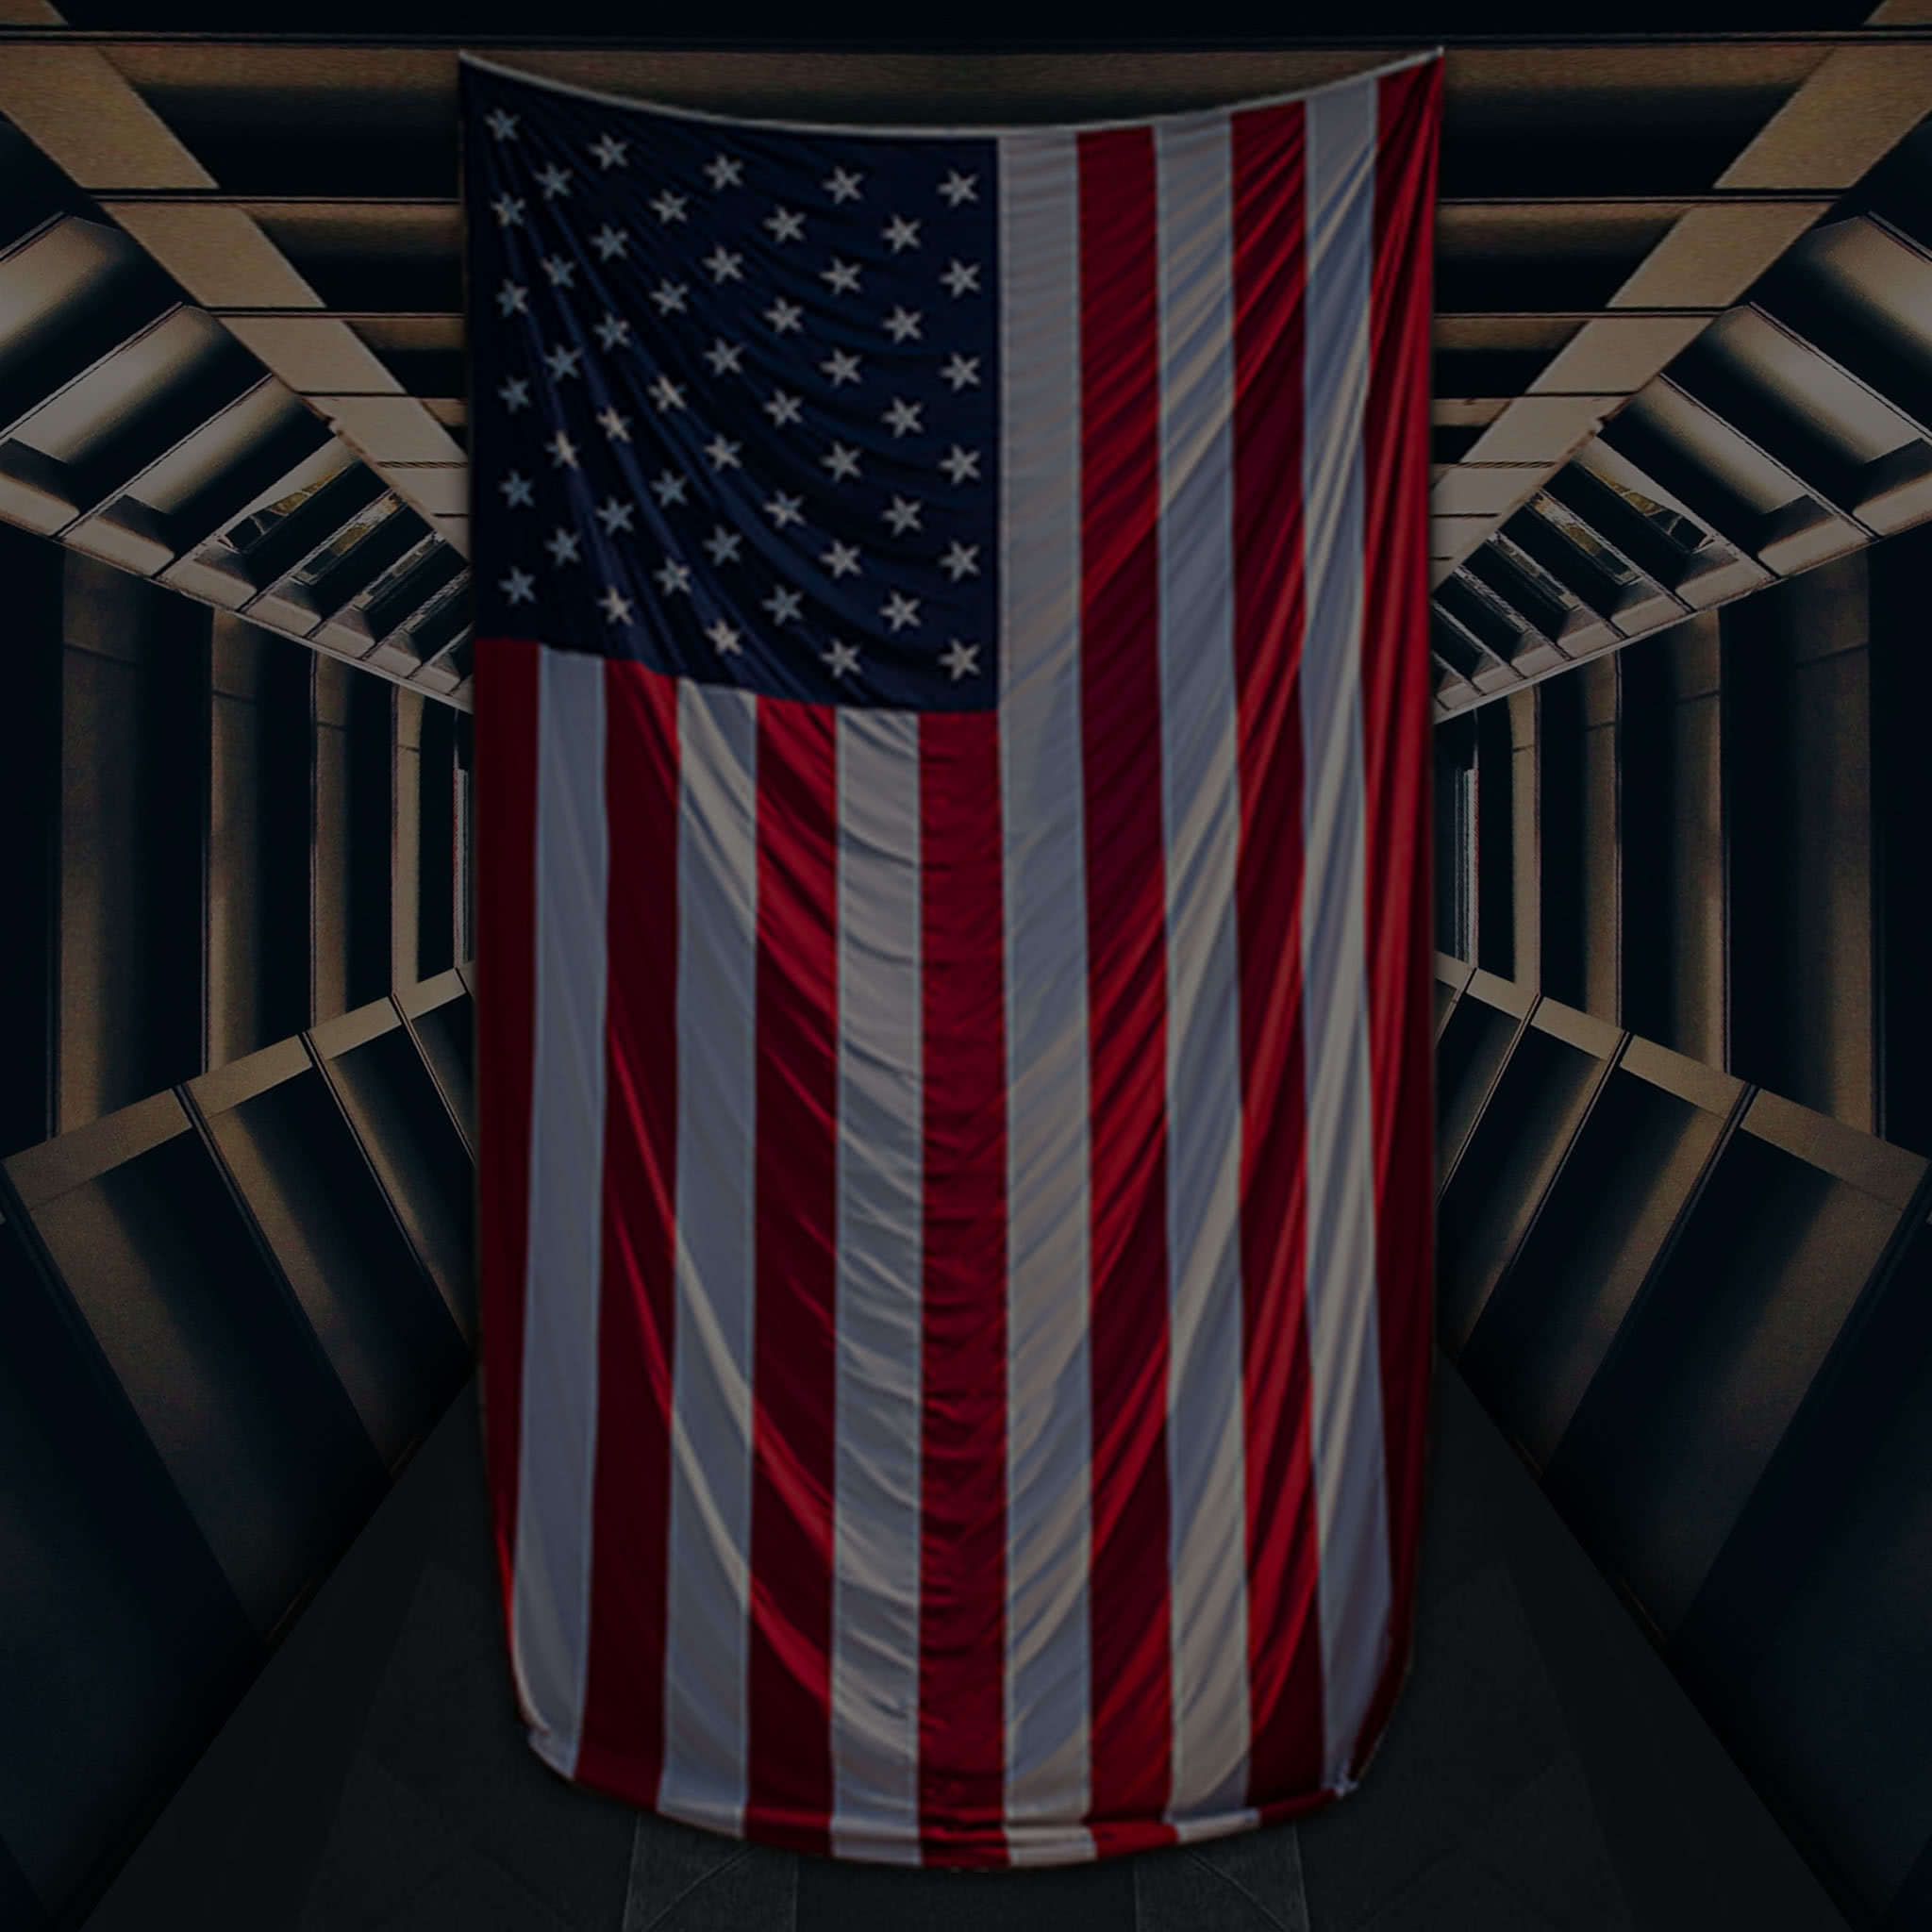 American flag hanging from the ceiling in front of a darkly lit metal corridor.